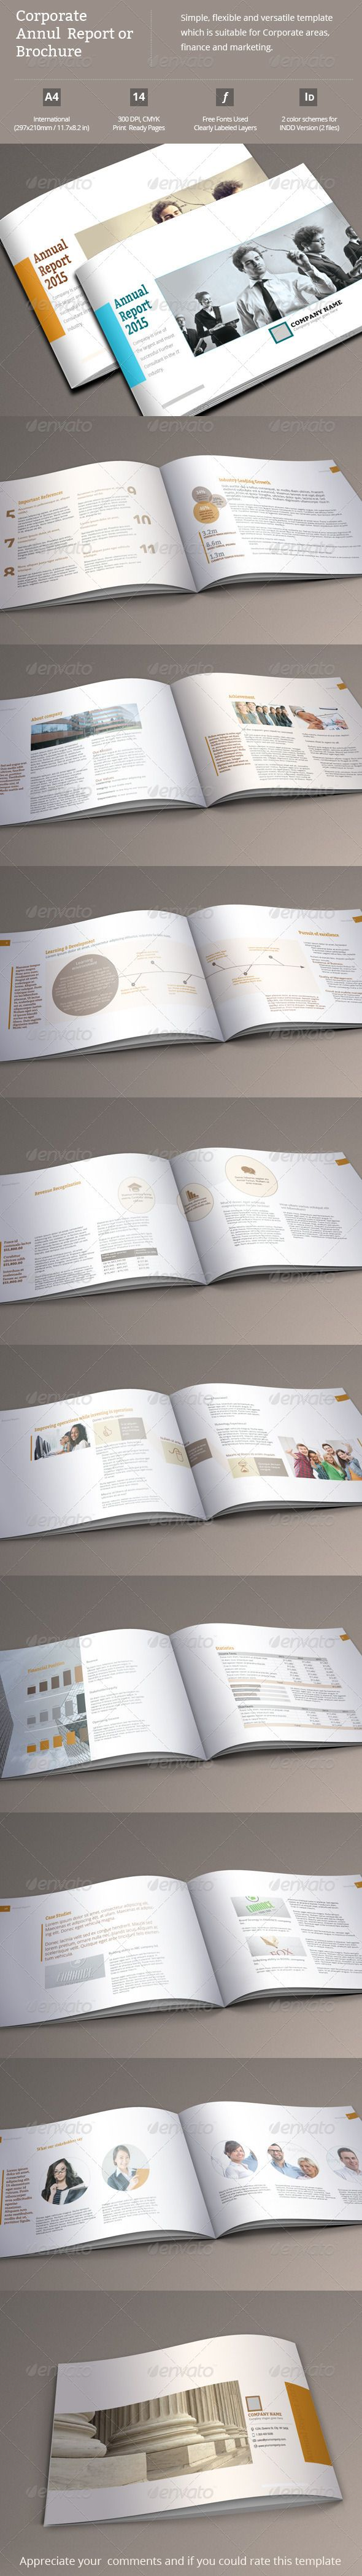 This Is A  Pages Indesign Annual Report Or Marketing Brochure